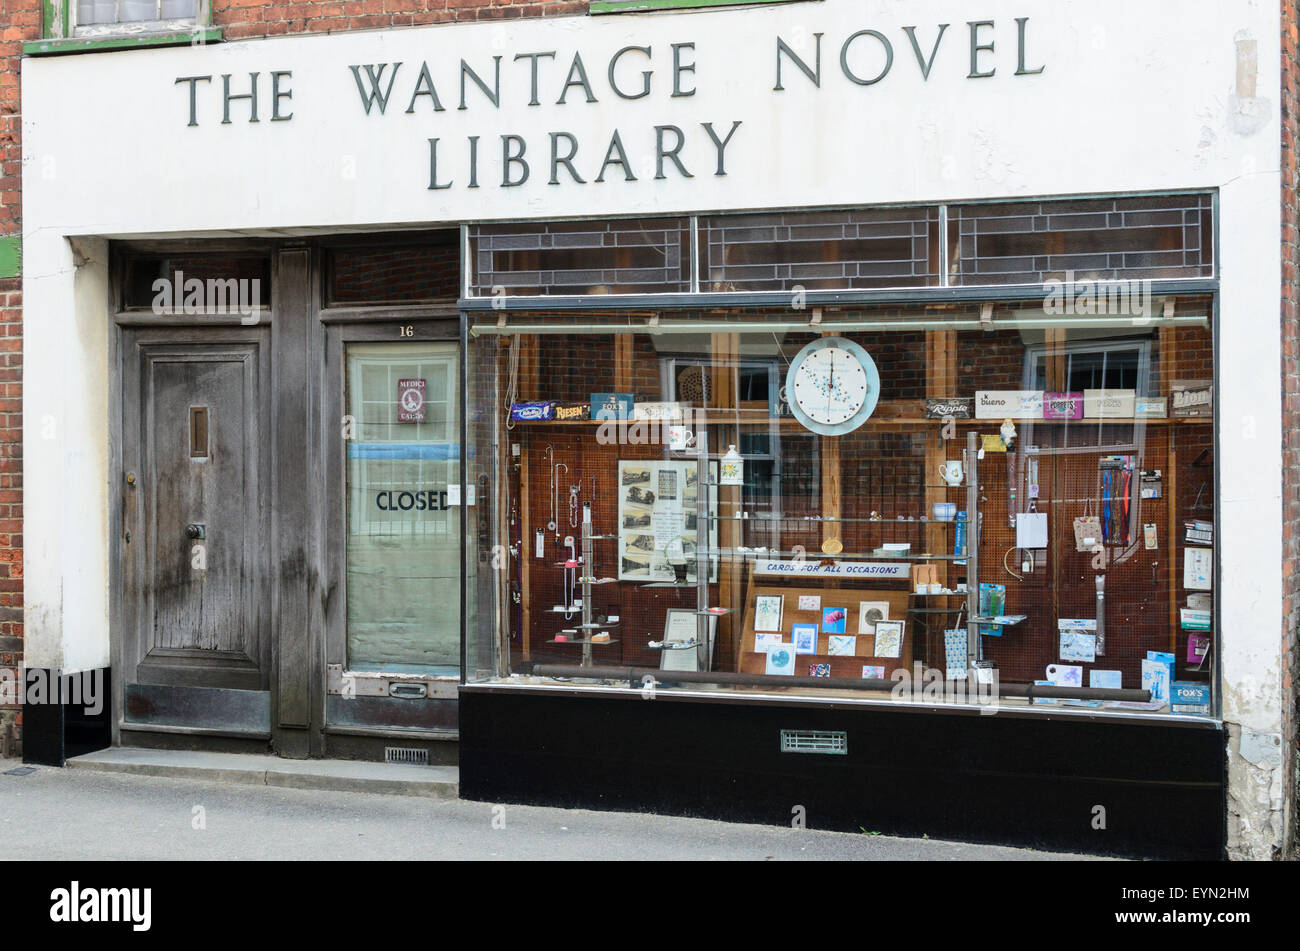 The Wantage Novel Library Shop in Wantage, Oxon, England, UK - Stock Image